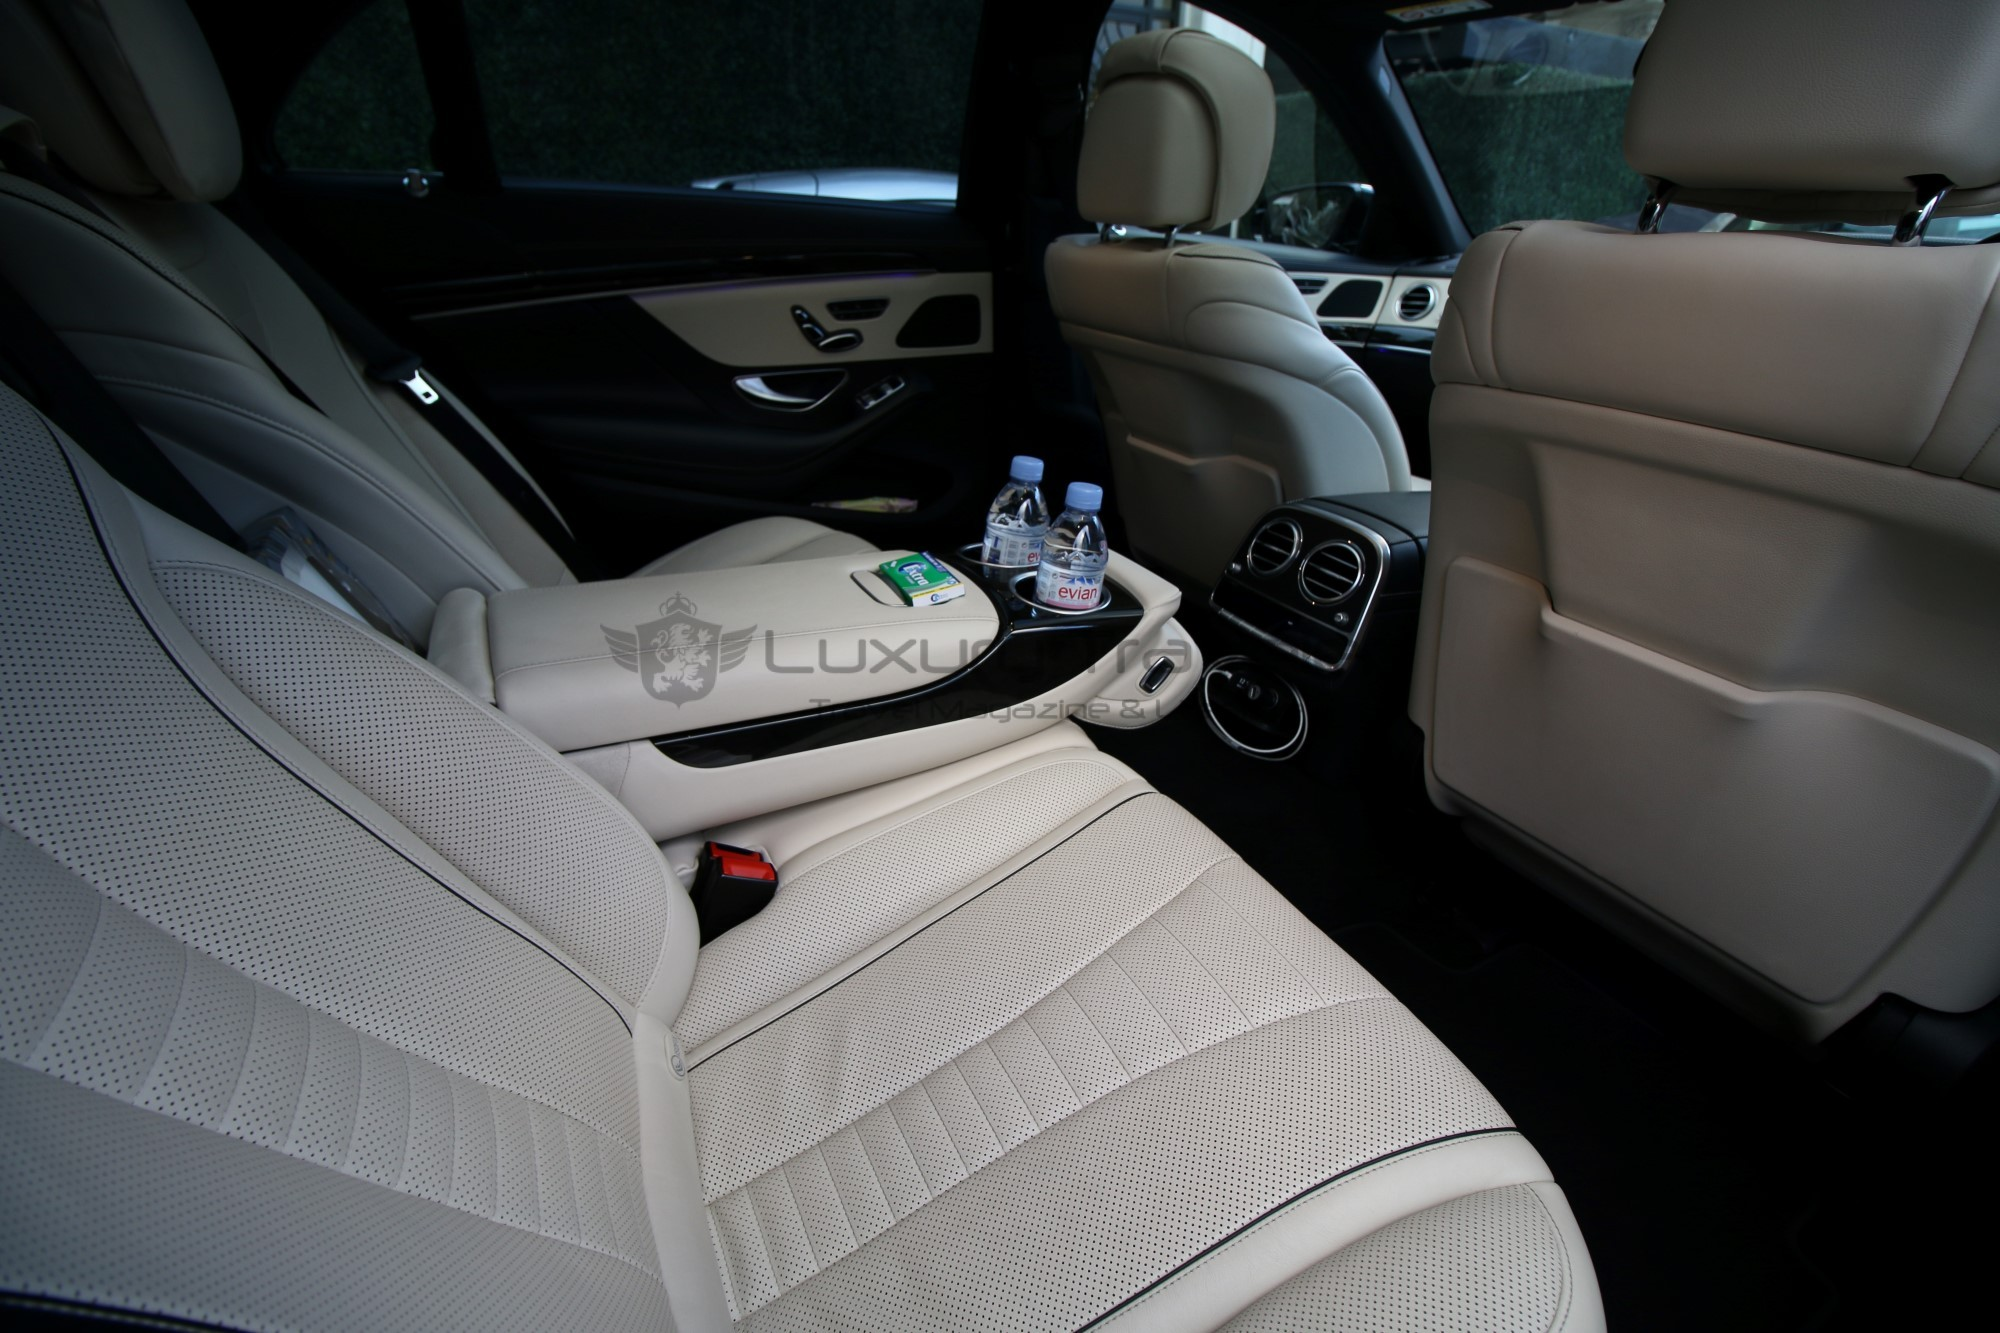 43-luxury_transfers_egchauffeurs_london_uk